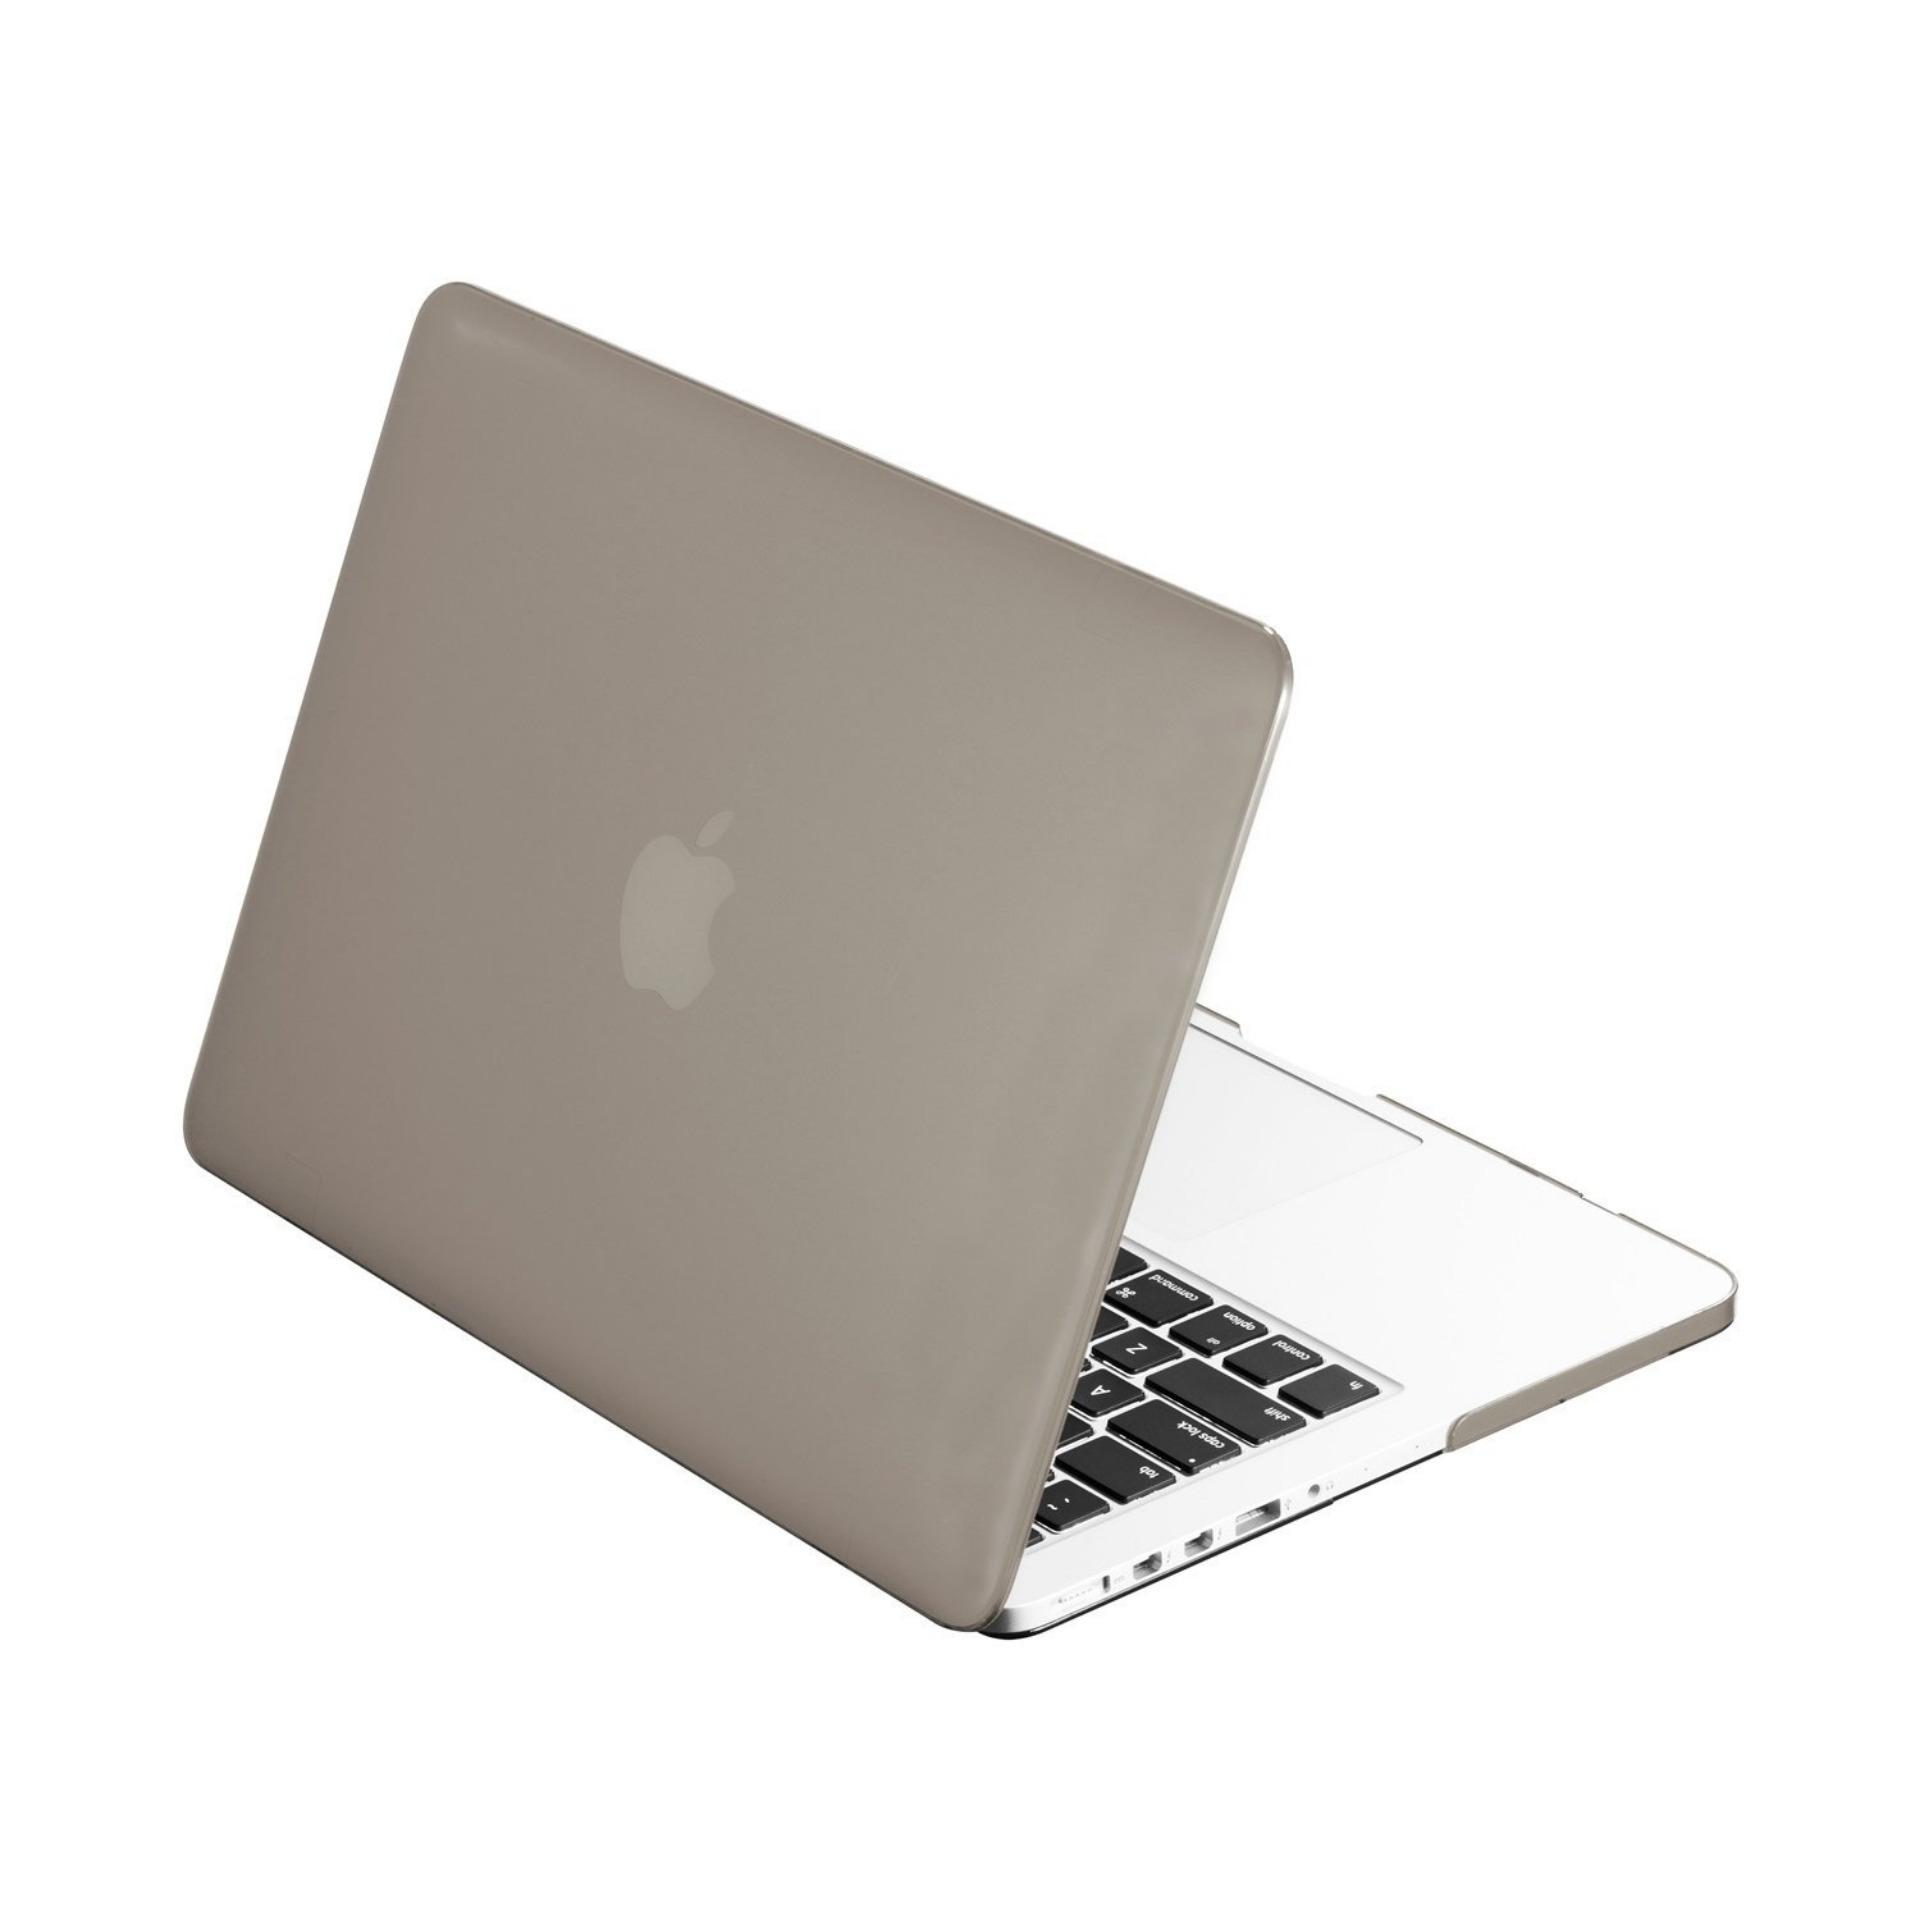 ... For MacBook Pro 13 Case 2016, Soft-Touch Matte Frosted Hard ShellCover with keyboard ...